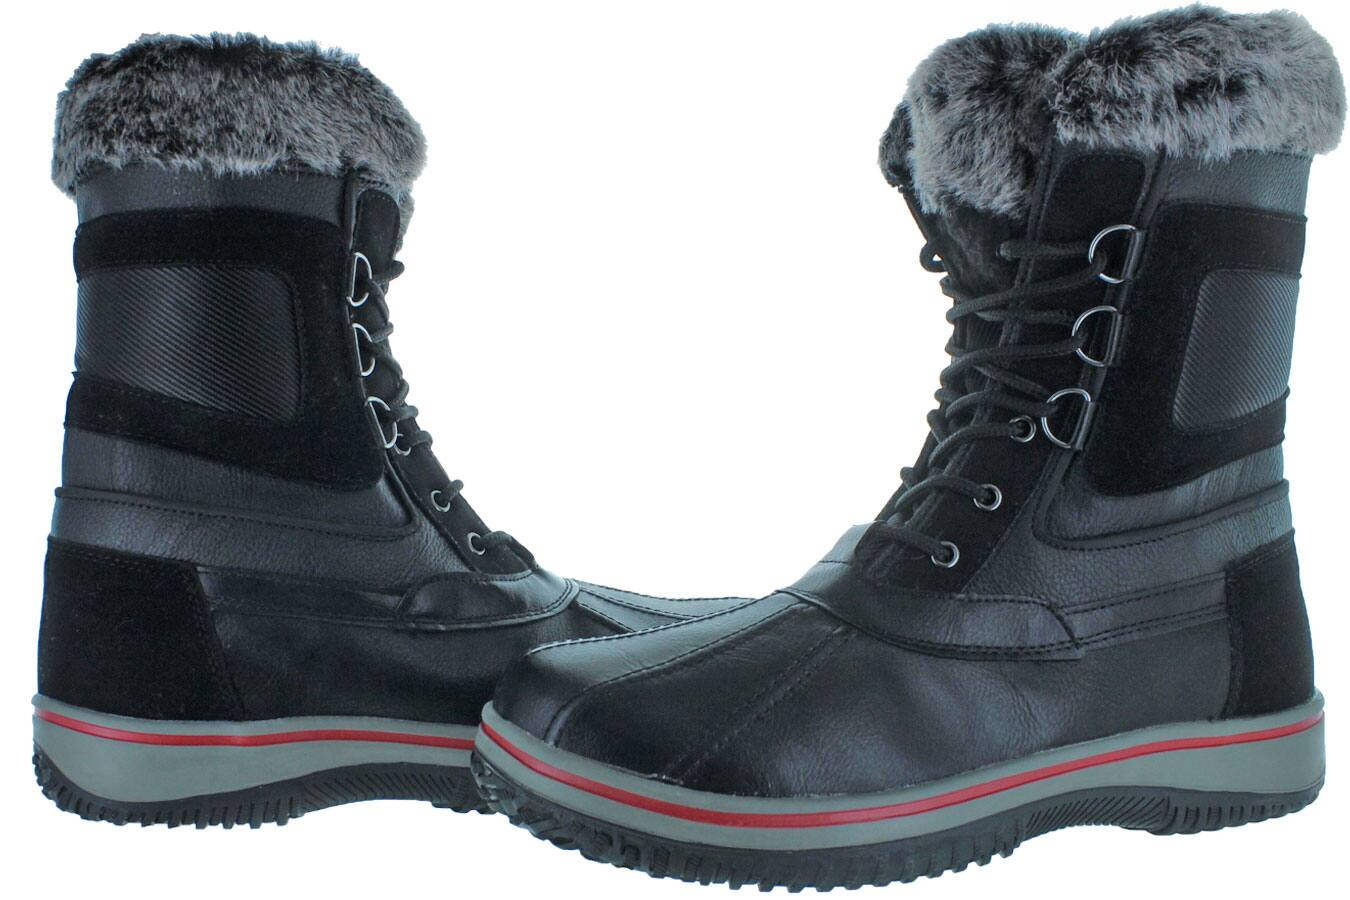 Revenant Men's Duck Toe Faux Fur Winter Snow Boots $40 + Free Shipping